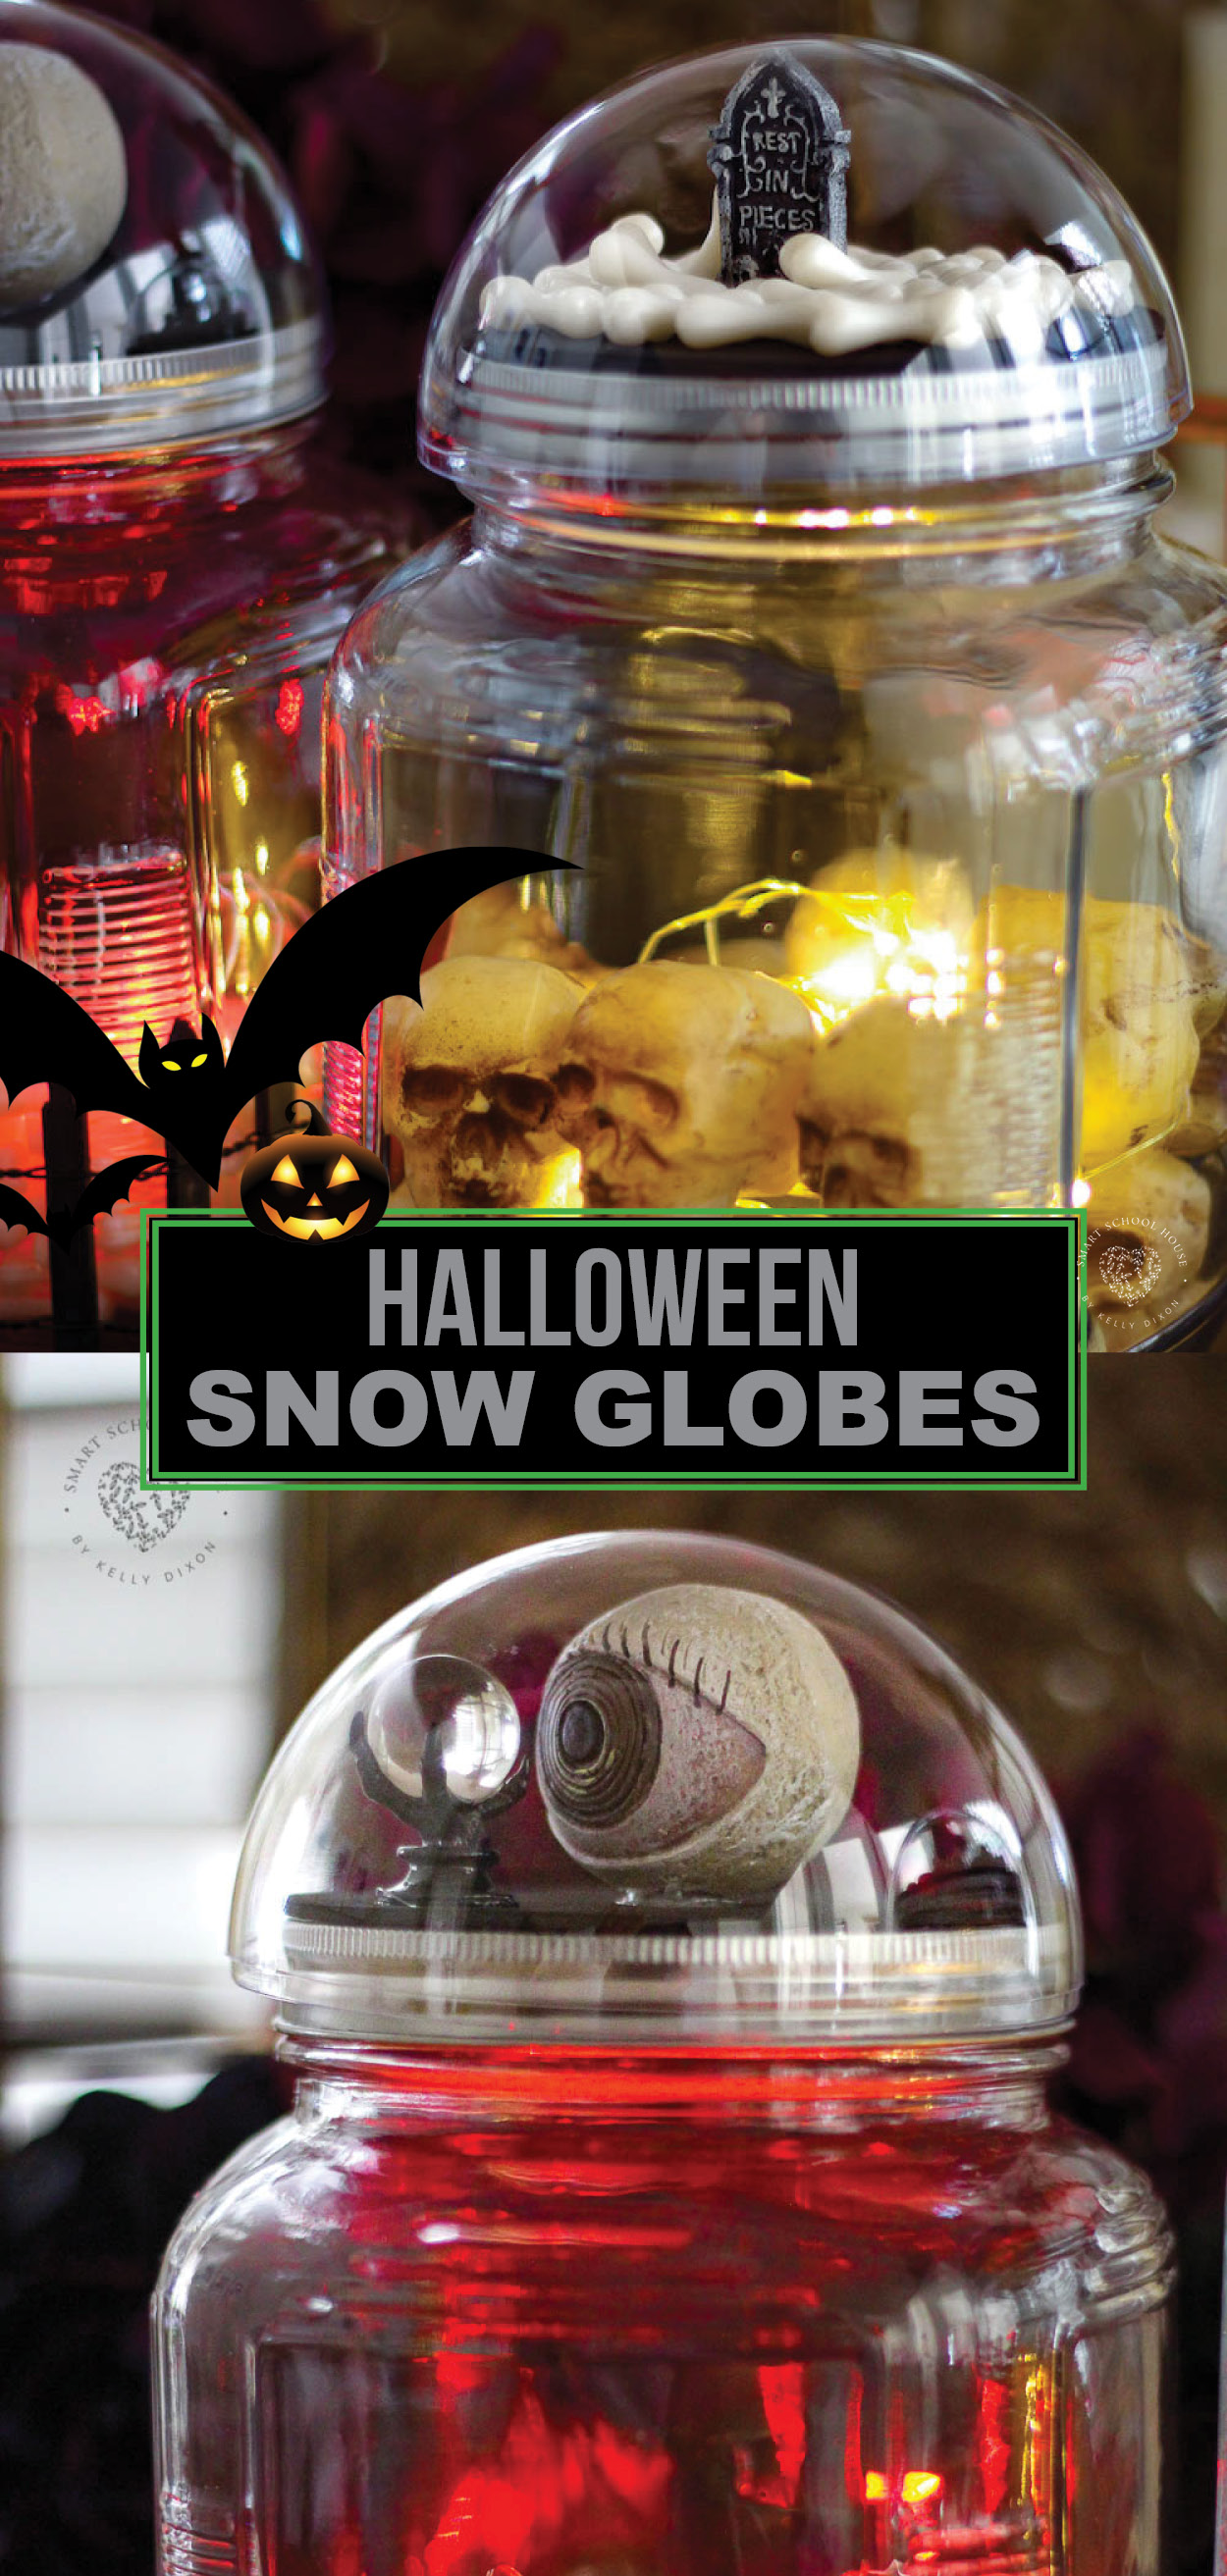 How To Make Spooky Halloween Slow Globes On Top Of Glowing Jars